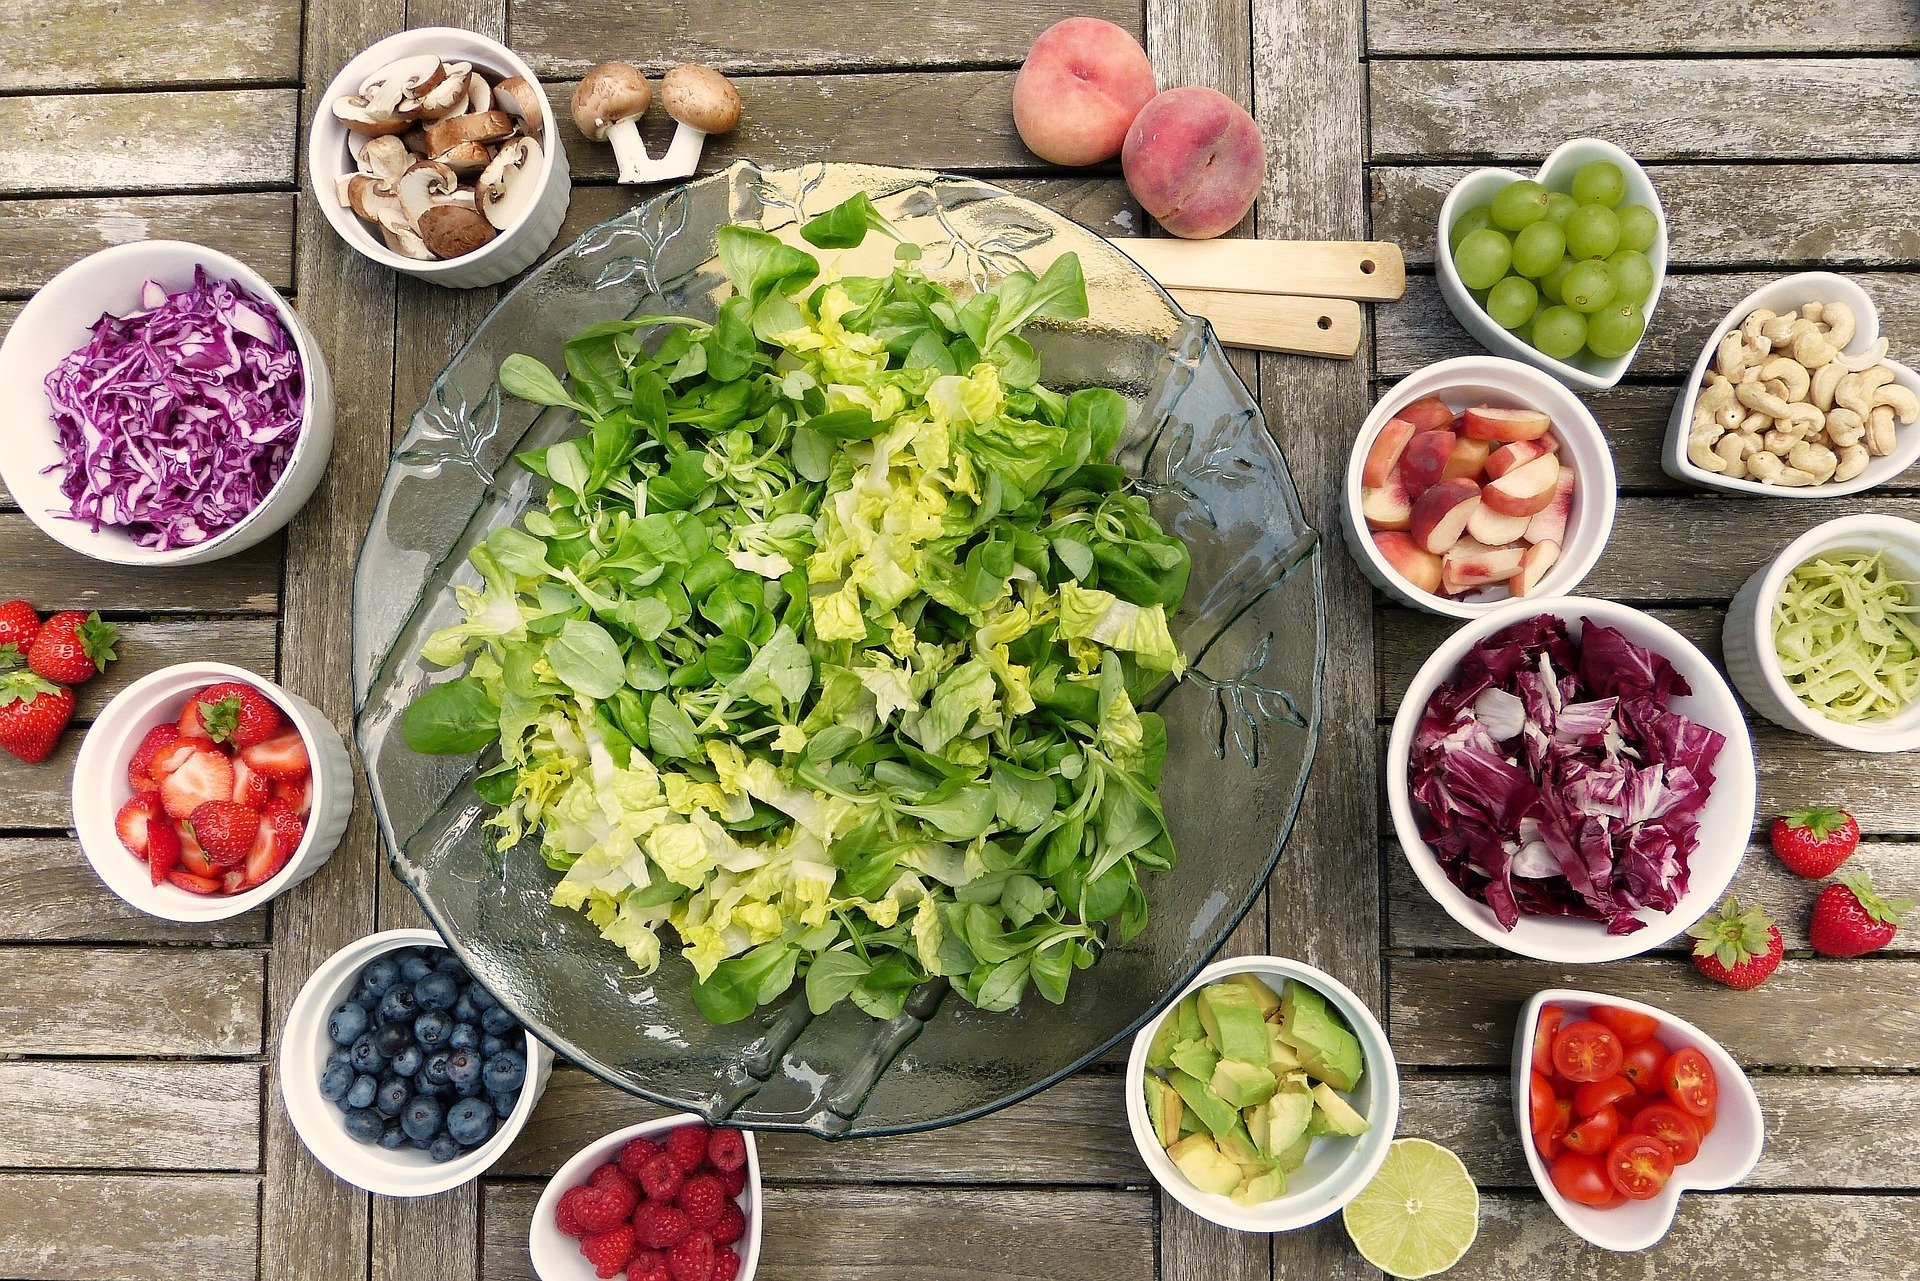 On Your Own Schedule - Virtual Cooking Class: 10 Tips for Healthy Eating on a Budget